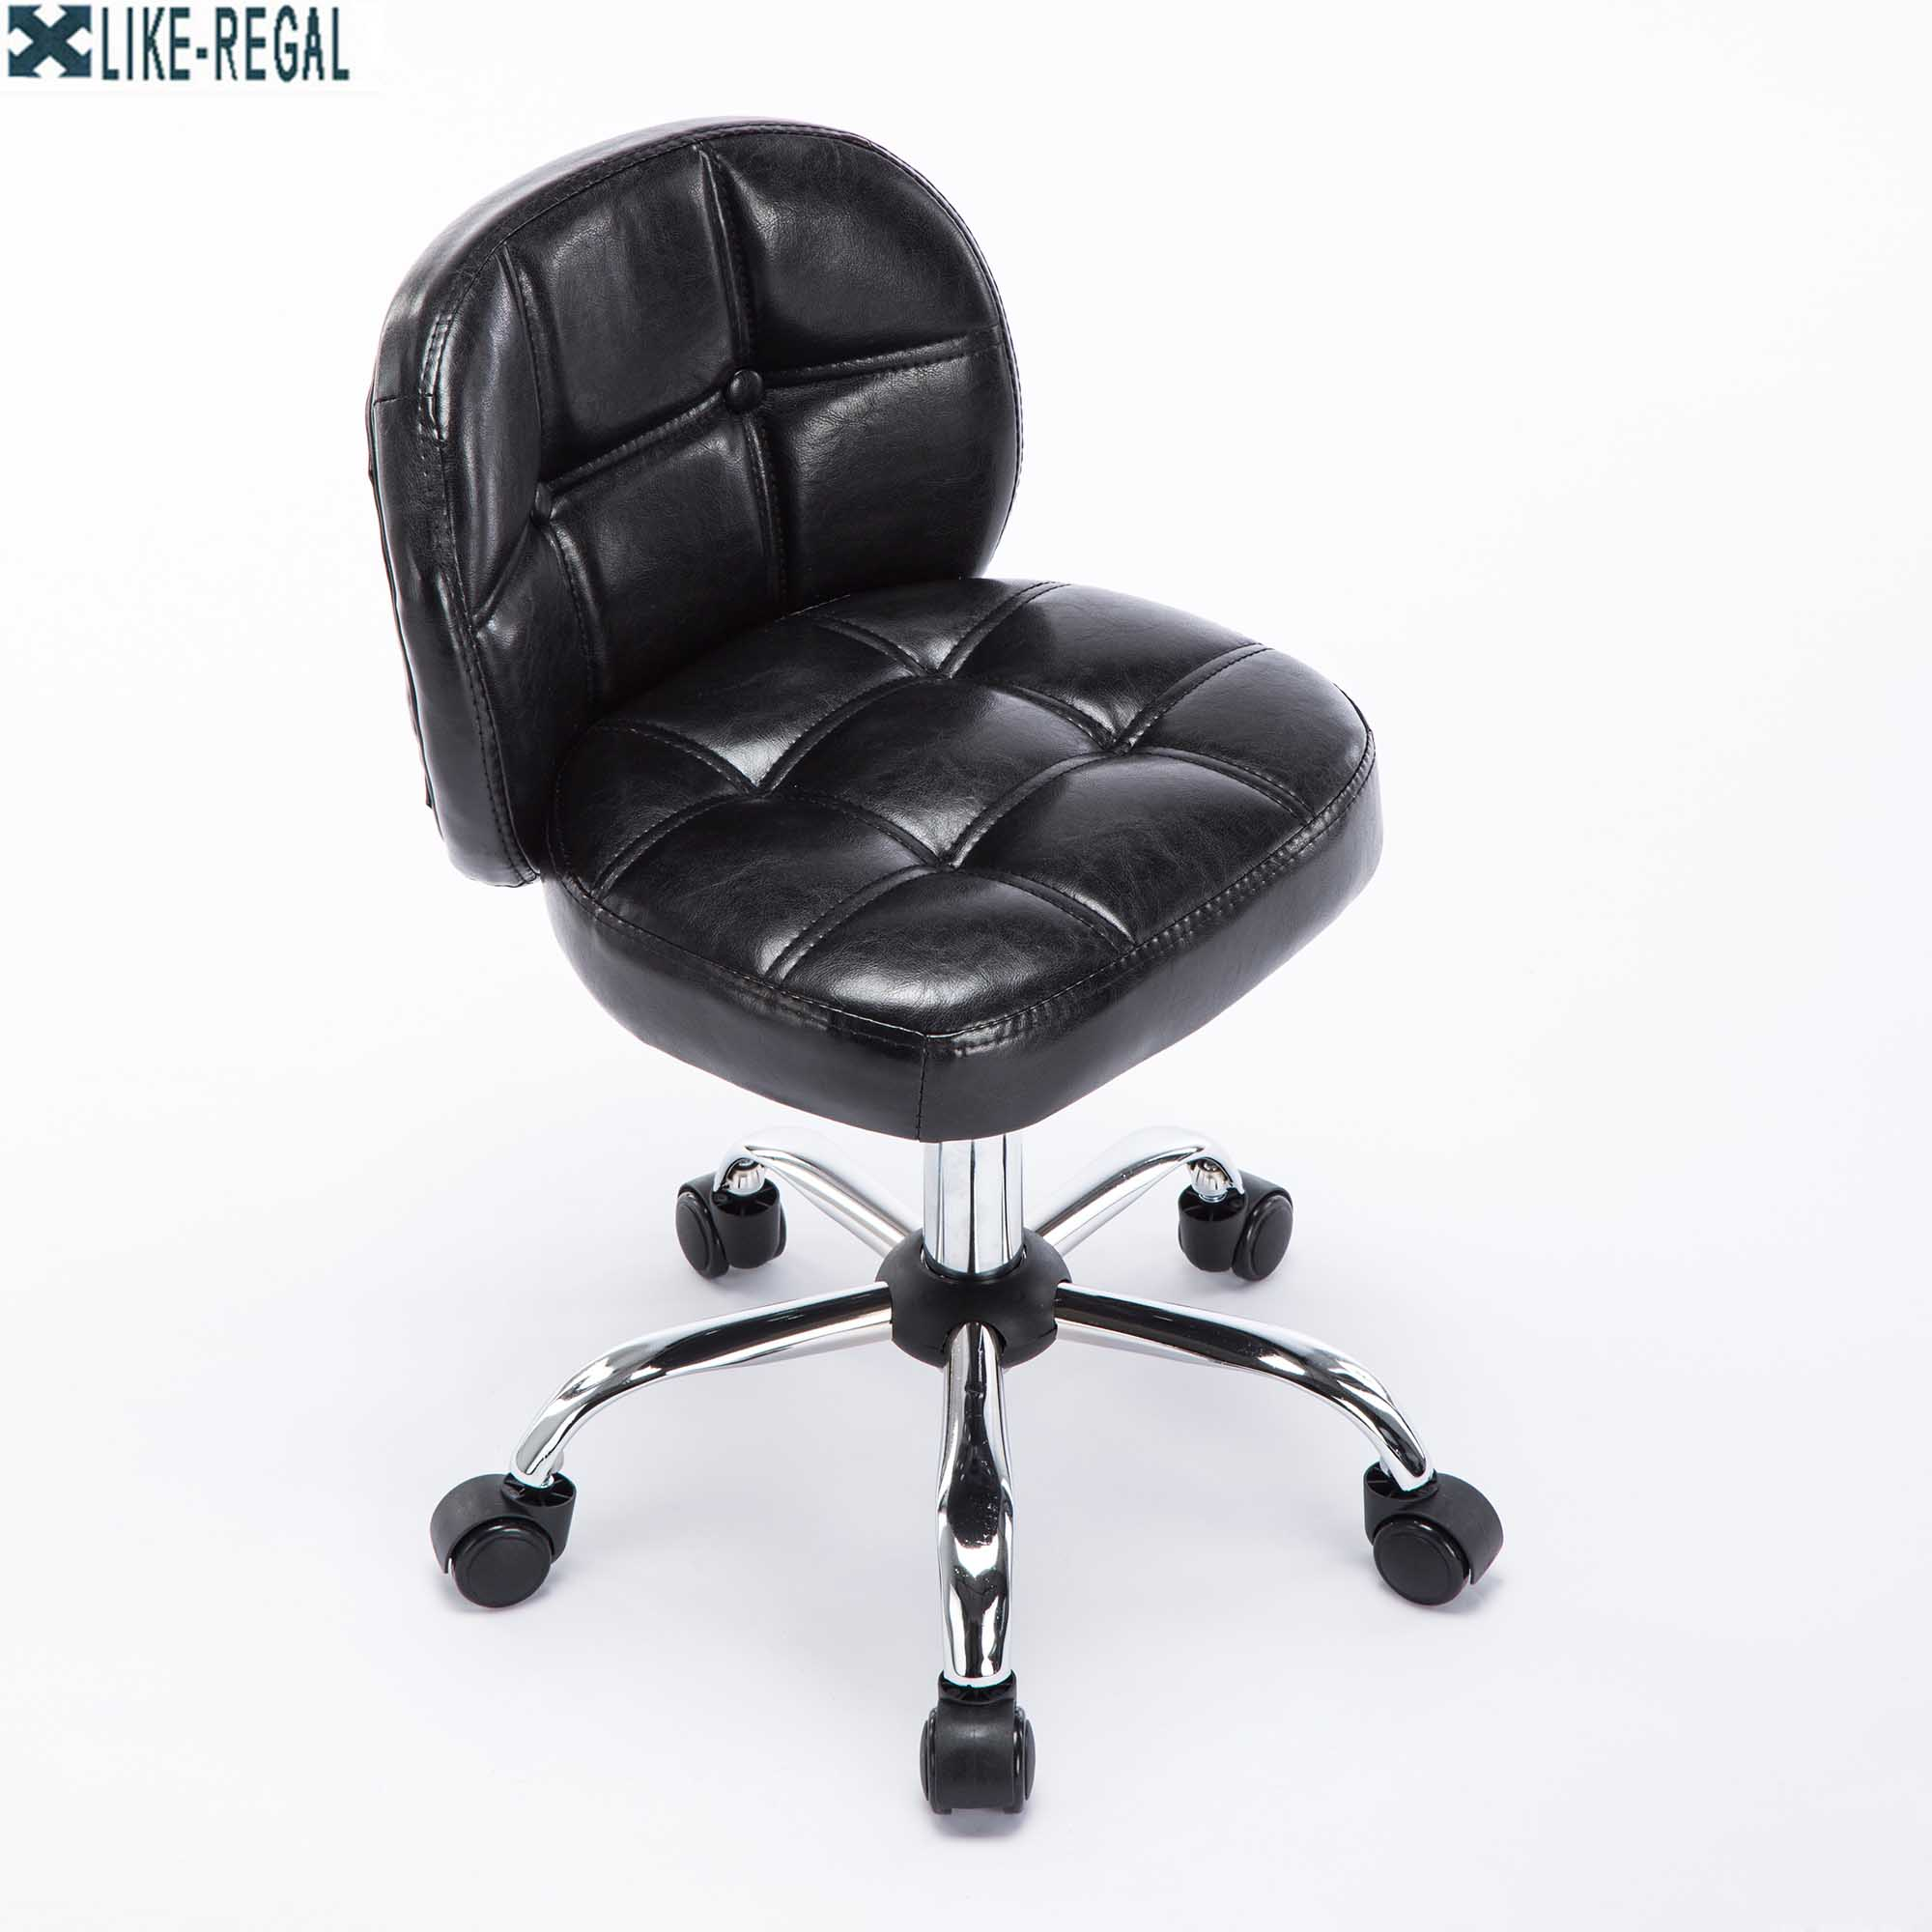 US $33.33 33% OFFComputer stool home small with backrest swivel chair bar  chair stool For coffee shopOffice Chairs - AliExpress